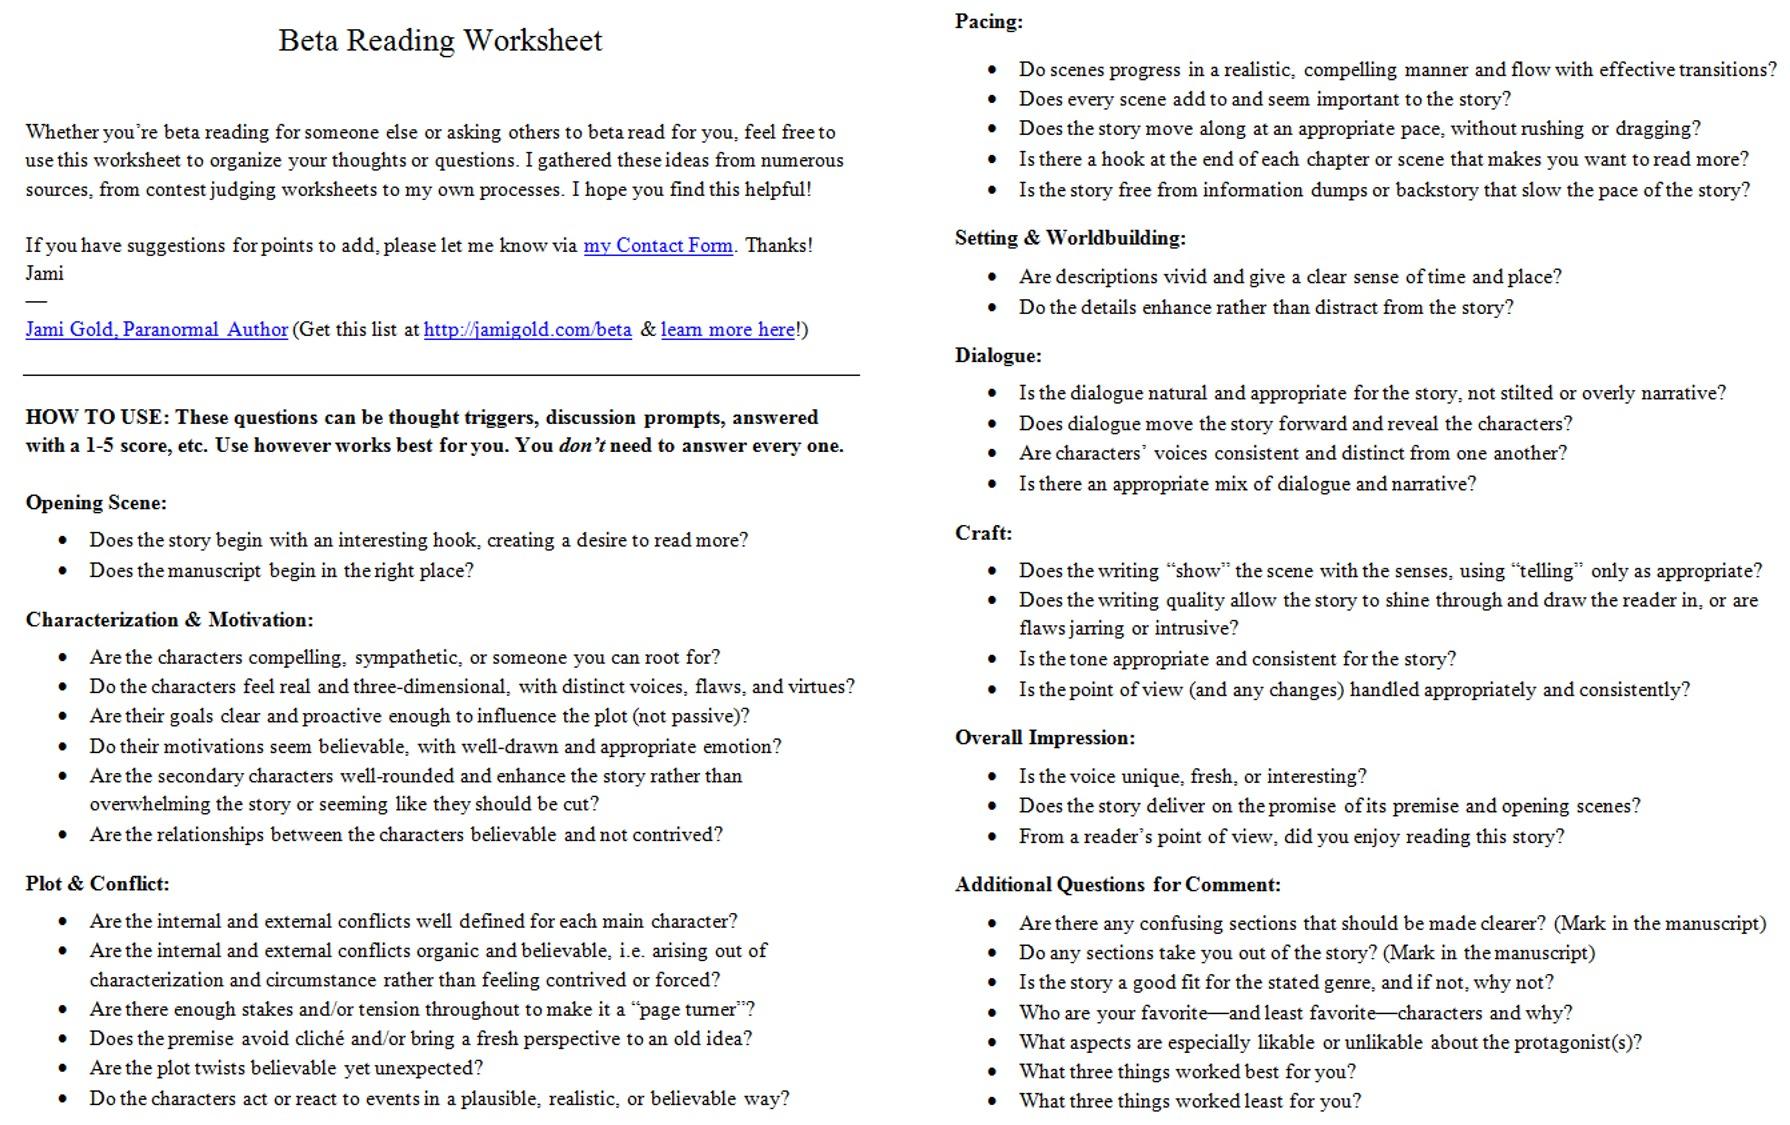 Aldiablosus  Unusual Worksheets For Writers  Jami Gold Paranormal Author With Likable Screen Shot Of The Twopage Beta Reading Worksheet With Appealing Ma Me Mi Mo Mu Worksheets Also Easter Egg Hunt Worksheet In Addition Probability Combinations Worksheet And Decimal Expanded Form Worksheets As Well As Area Of Irregular Rectangles Worksheet Additionally Creating A Line Graph Worksheet From Jamigoldcom With Aldiablosus  Likable Worksheets For Writers  Jami Gold Paranormal Author With Appealing Screen Shot Of The Twopage Beta Reading Worksheet And Unusual Ma Me Mi Mo Mu Worksheets Also Easter Egg Hunt Worksheet In Addition Probability Combinations Worksheet From Jamigoldcom